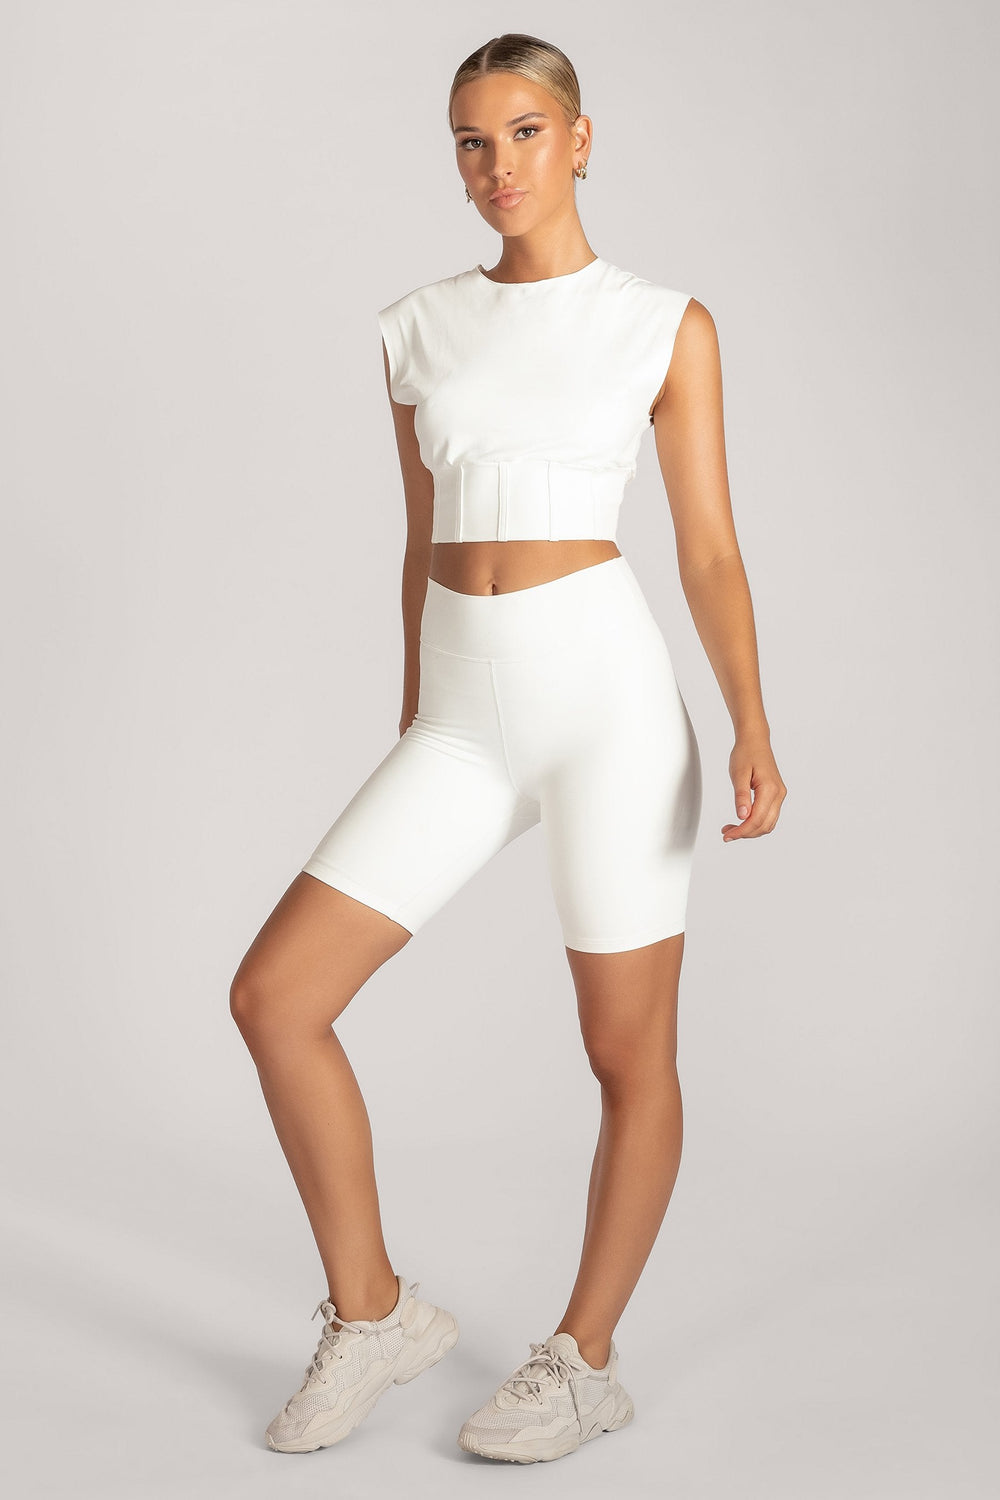 Hestia Panelled Sleeveless Crop Top - White - MESHKI ?id=16083117244491